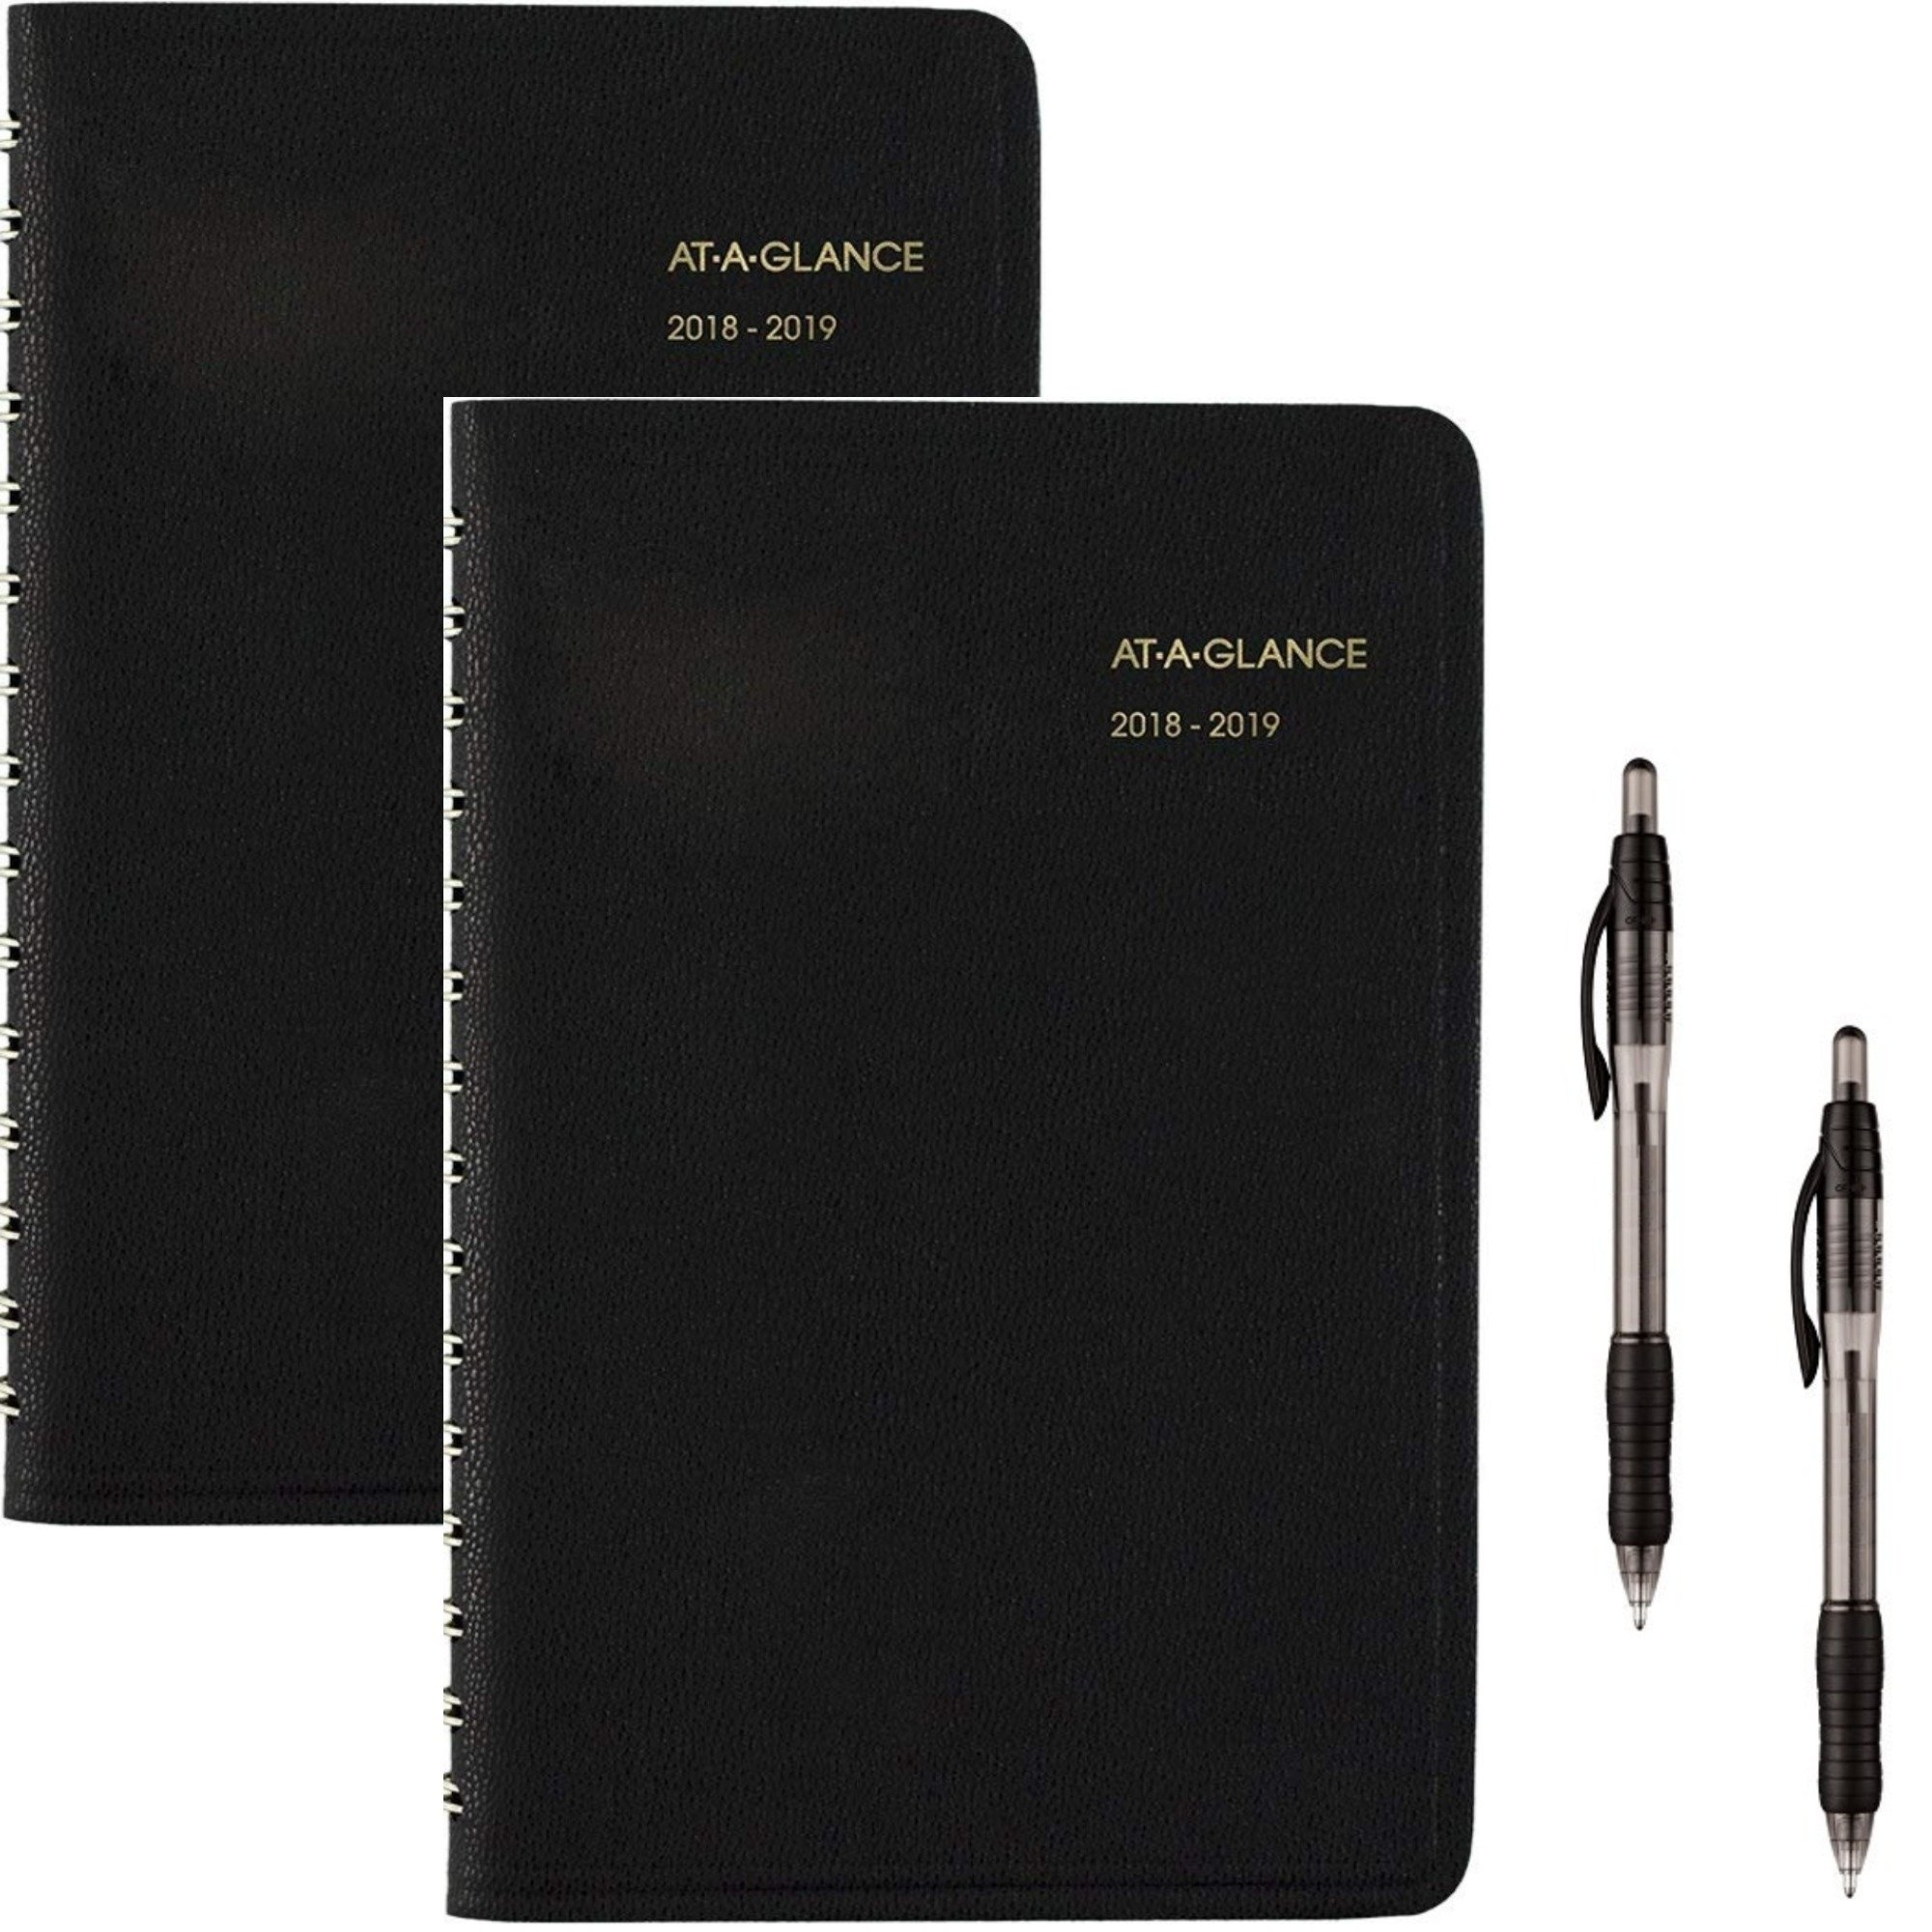 AT-A-Glance 2018-2019 Academic Year Daily Appointment Book/Planner, Small, 4-7/8 x 8, Black (7080705) 2 Pack - Bundle Includes 2 Black Ballpoint Pen